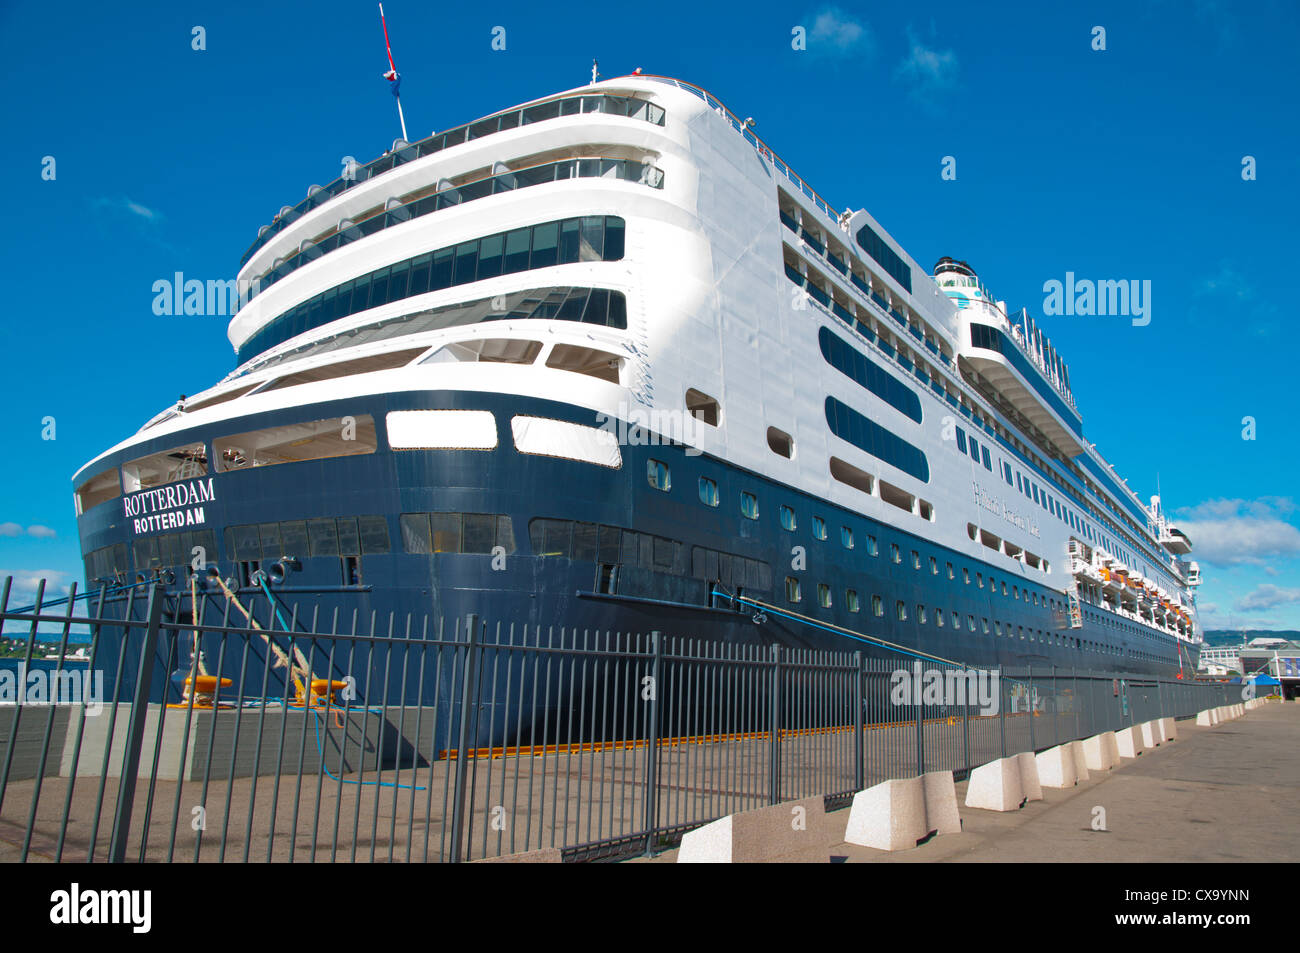 Cruise ship anchored passenger port in Pipervika district by the passenger port Sentrum central Oslo Norway Europe - Stock Image